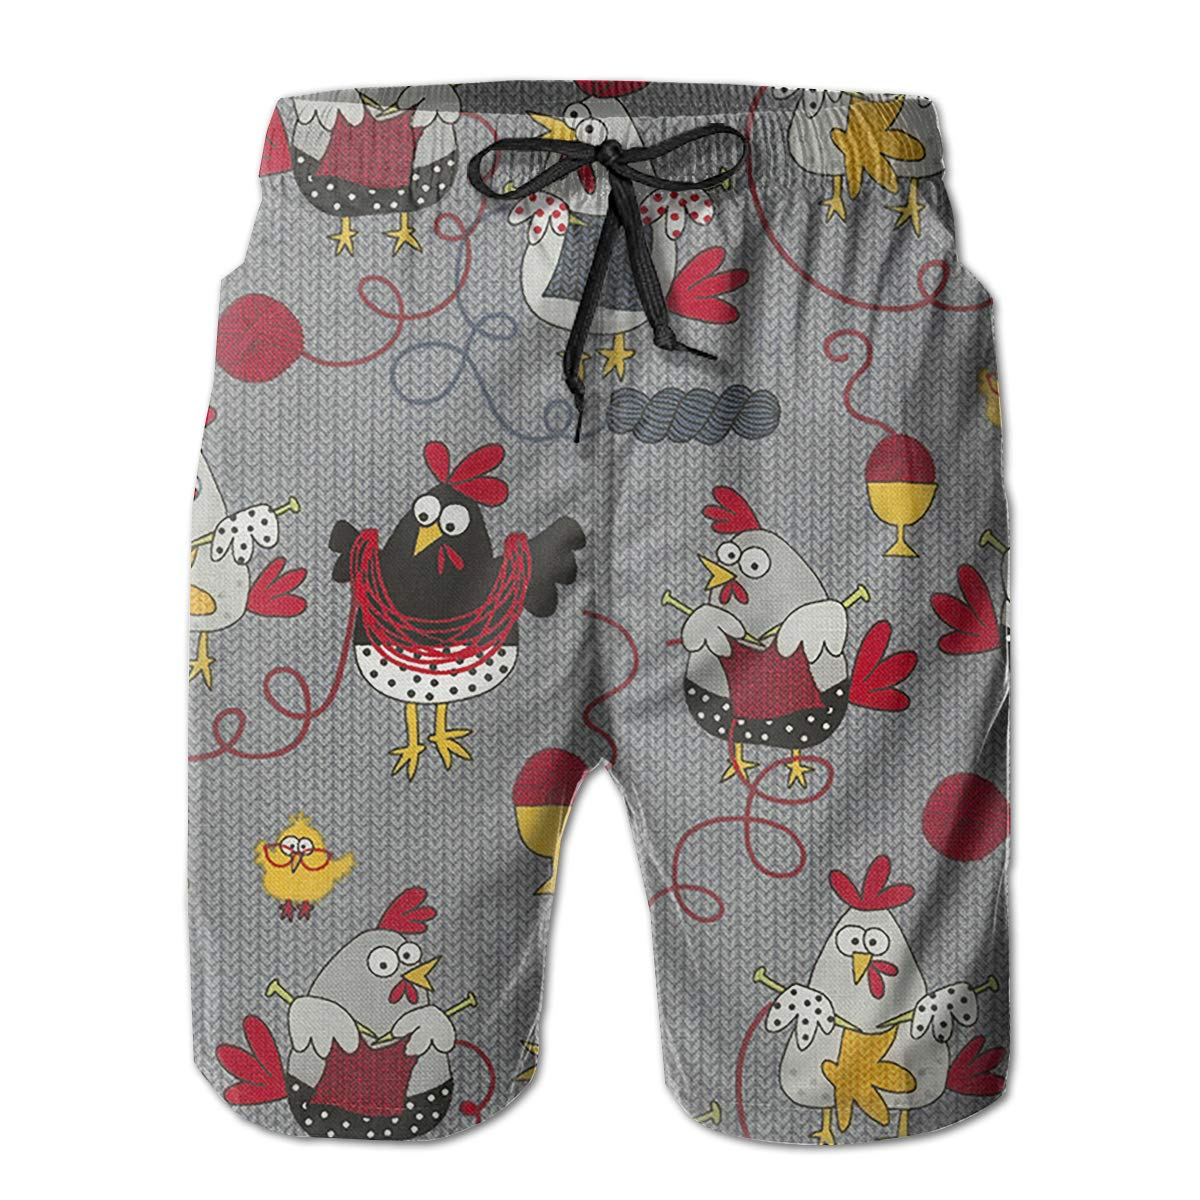 Mens Swim Trunks Red Chicken Grey Quick Dry Drawstring Surfing Beach Board Shorts with Pockets